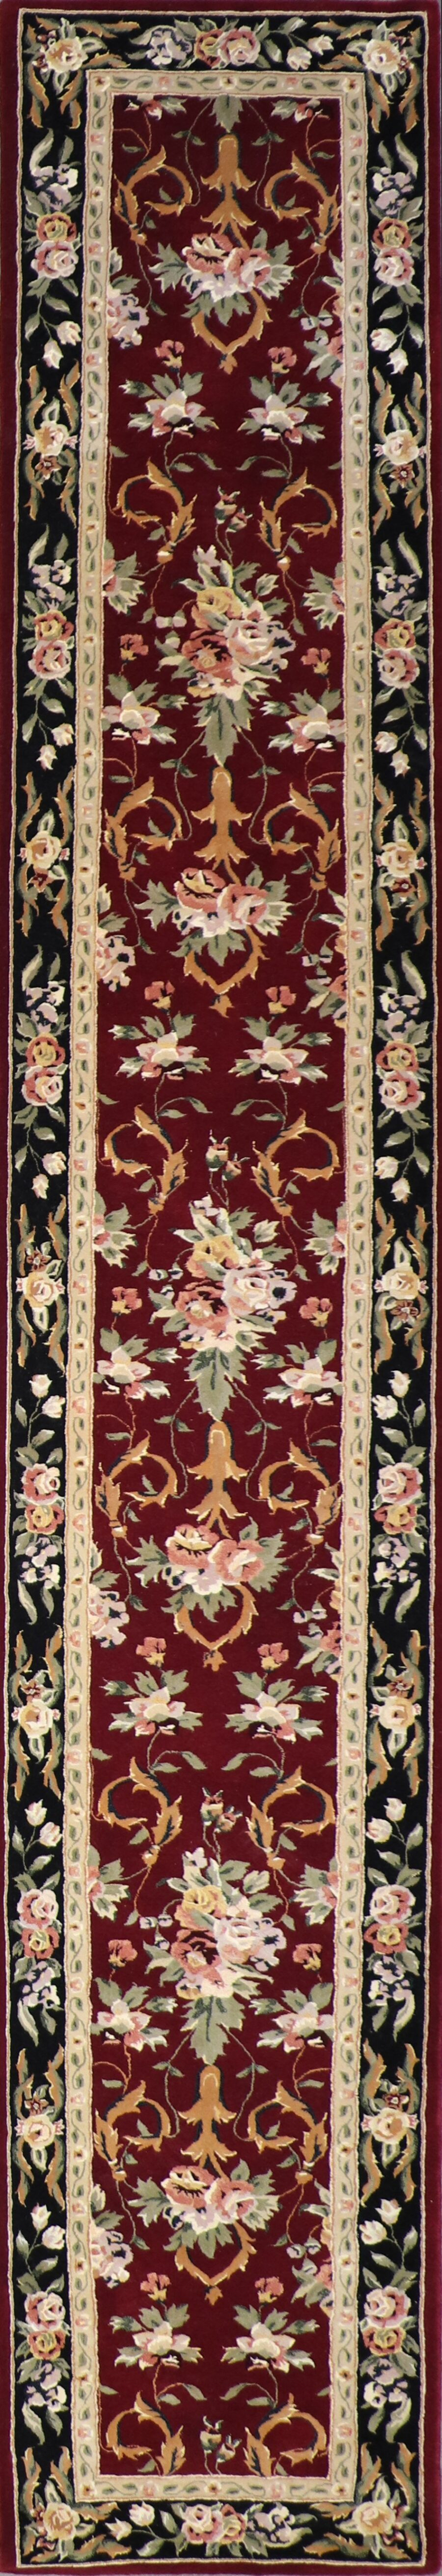 """2'6""""x16' Traditional Tabriz Wool Hand-Tufted Rug - Direct Rug Import   Rugs in Chicago, Indiana,South Bend,Granger"""